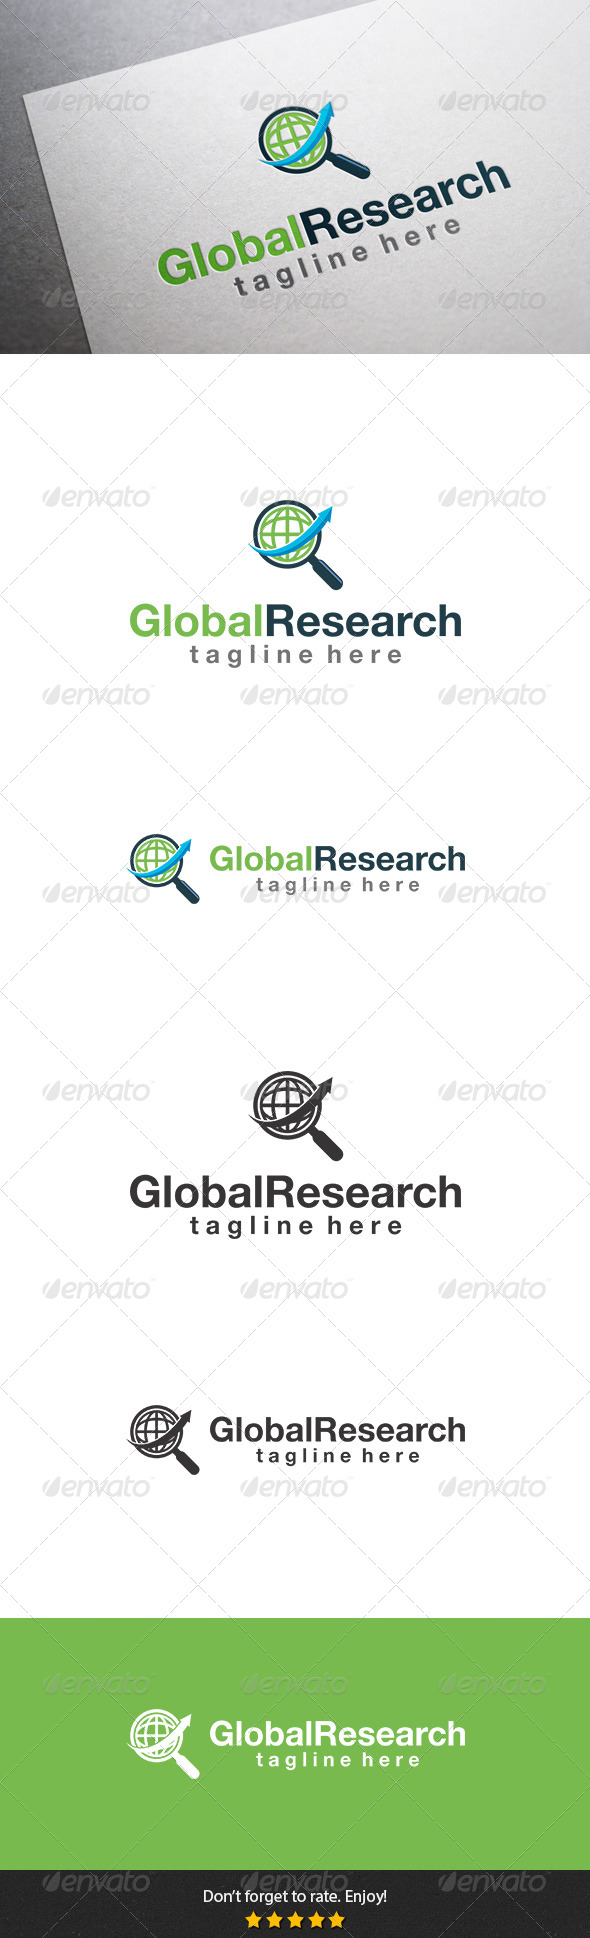 GraphicRiver Global Research Logo 5678378